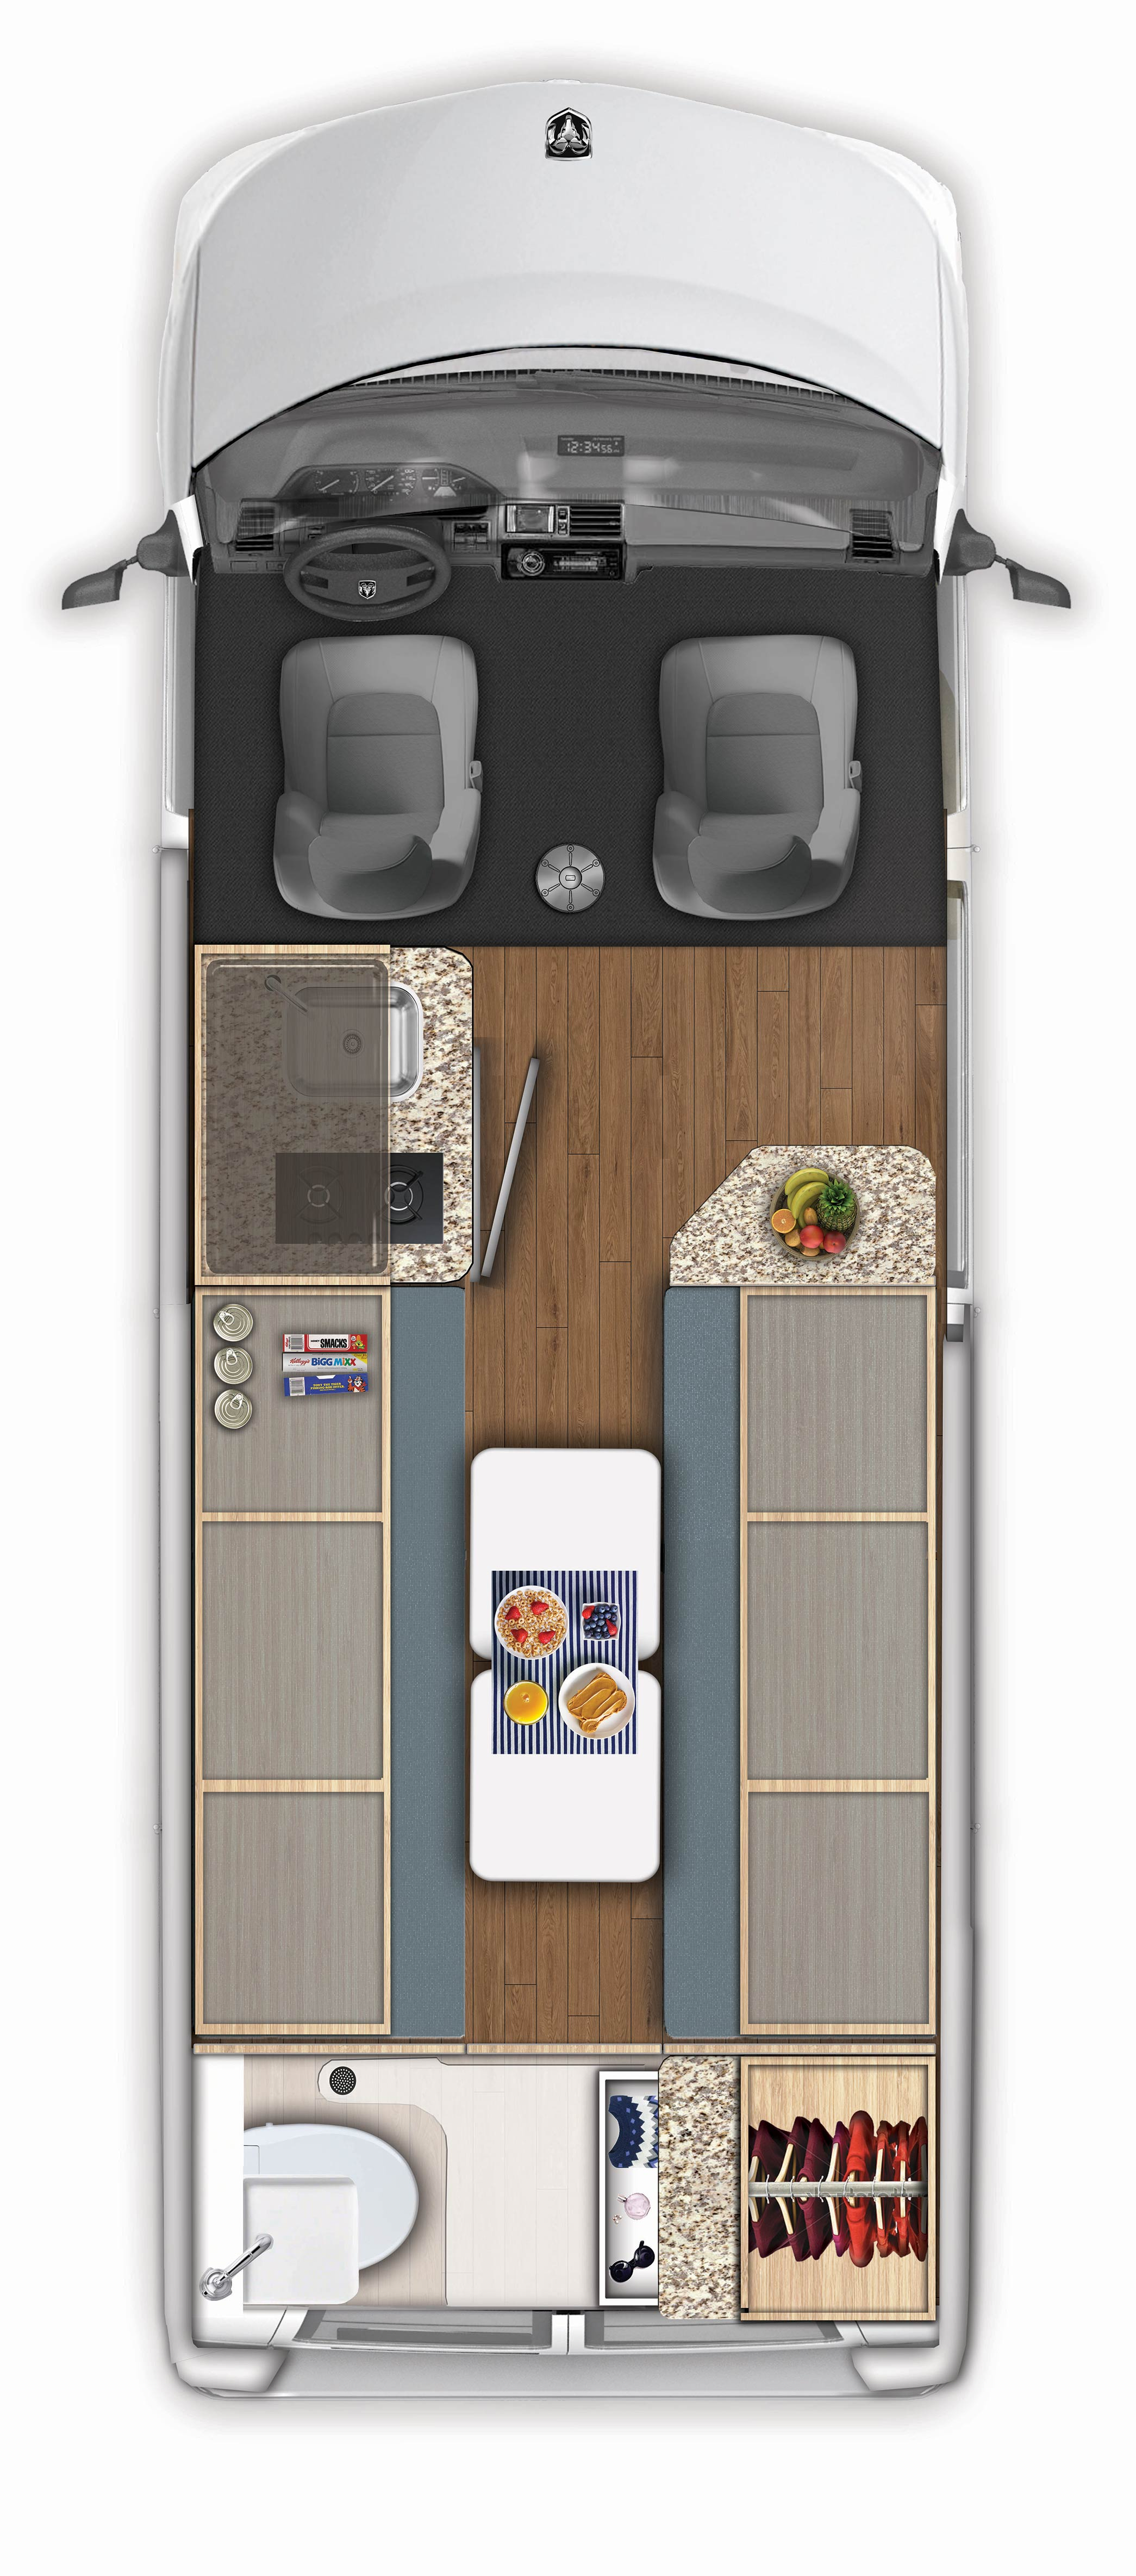 2018 Carado Banff Floor Plan